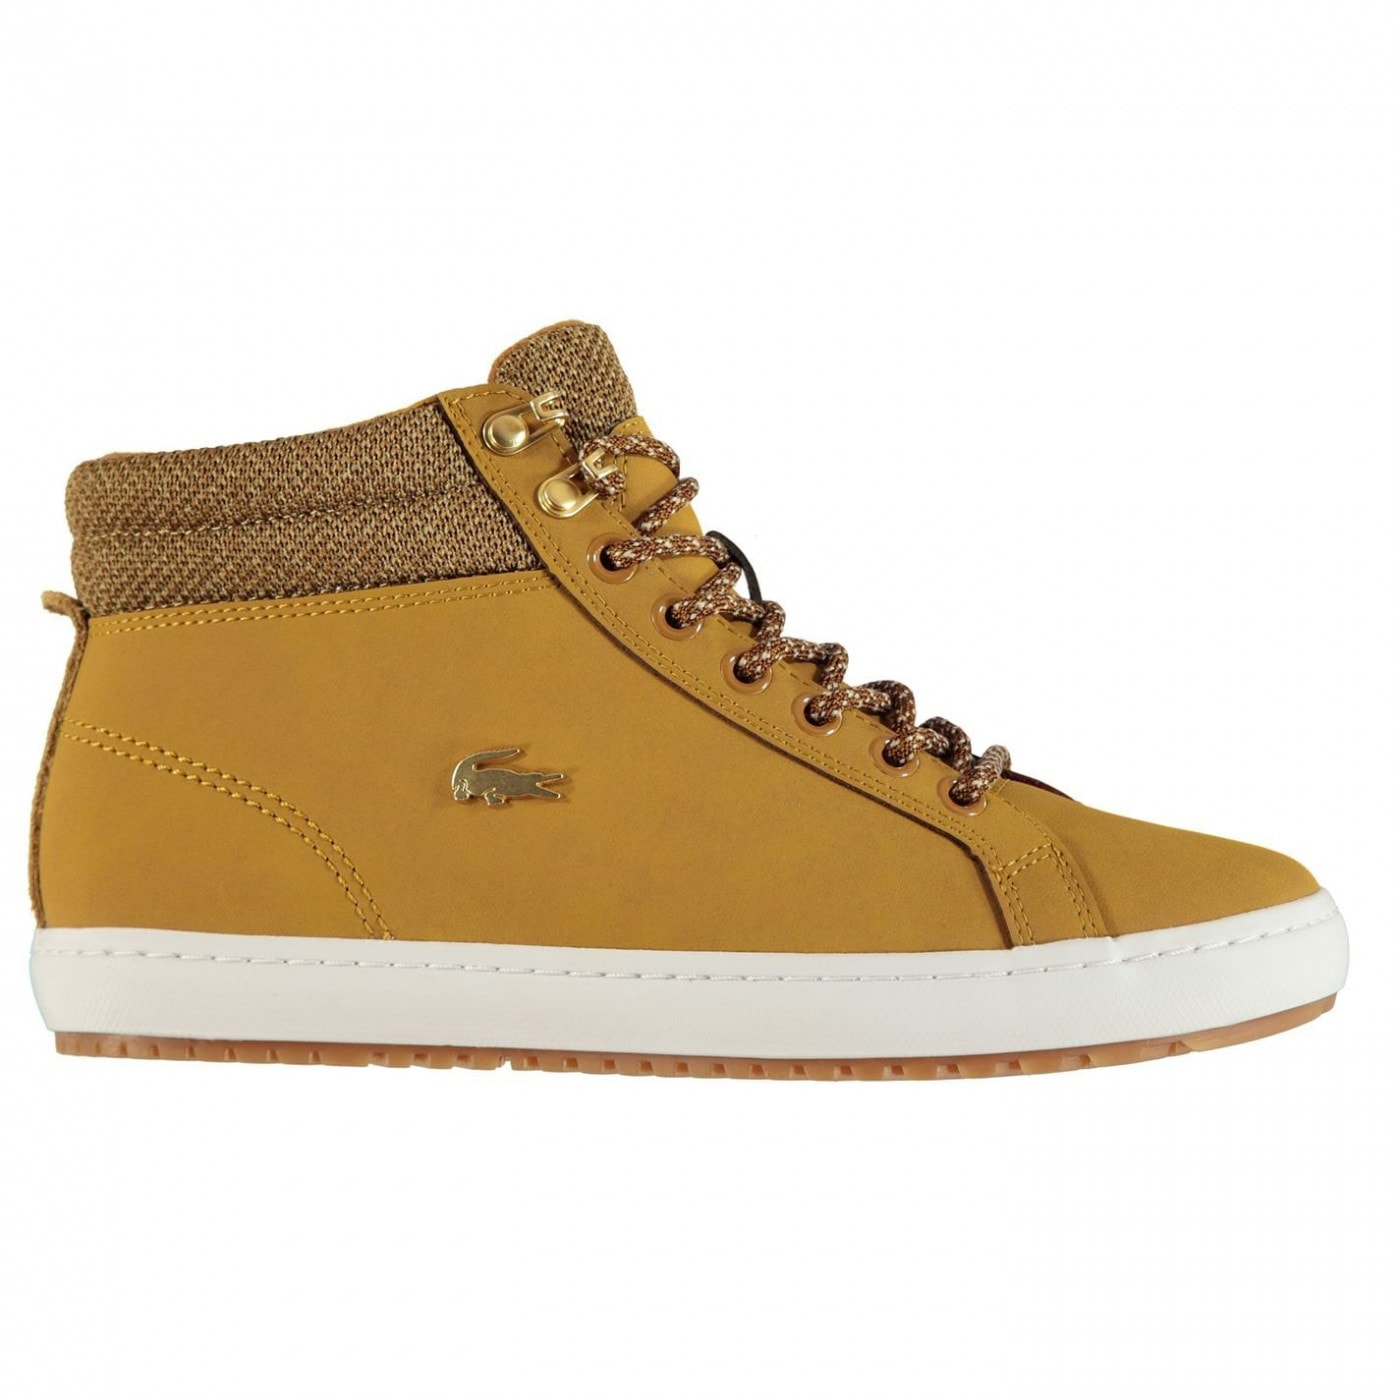 Lacoste Straightset Insulated Boots